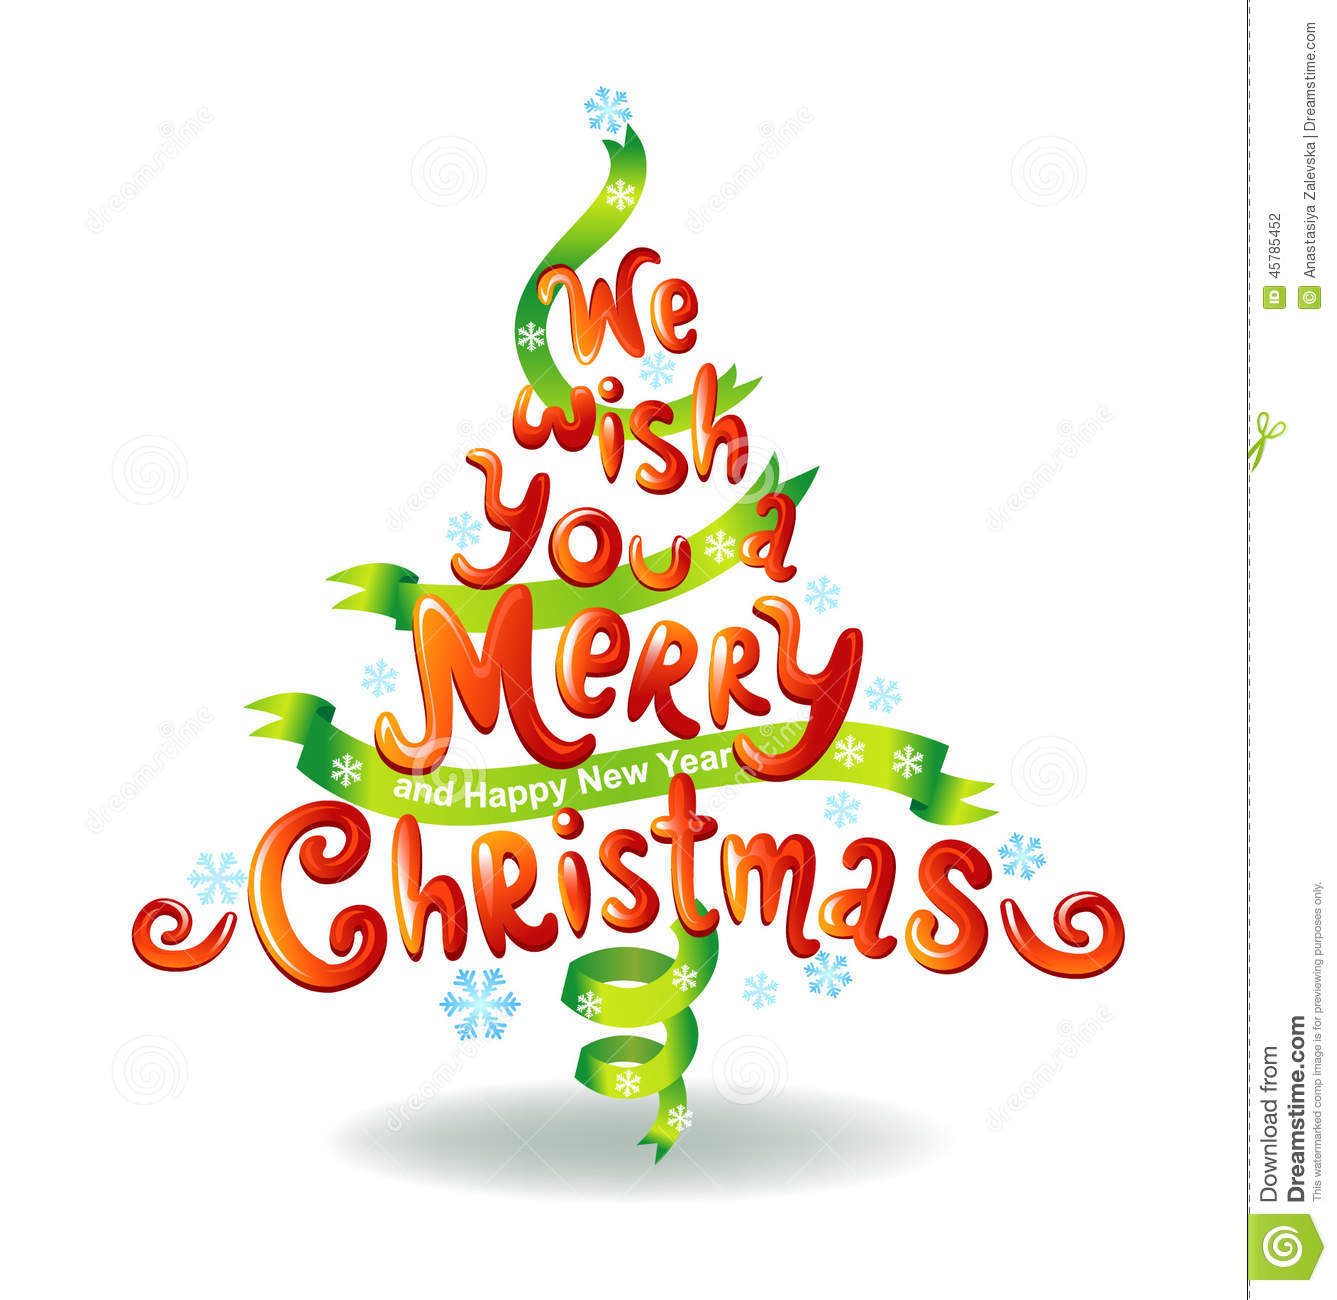 82+ We Wish You A Merry Christmas Clip Art - We Wish You A Merry ...